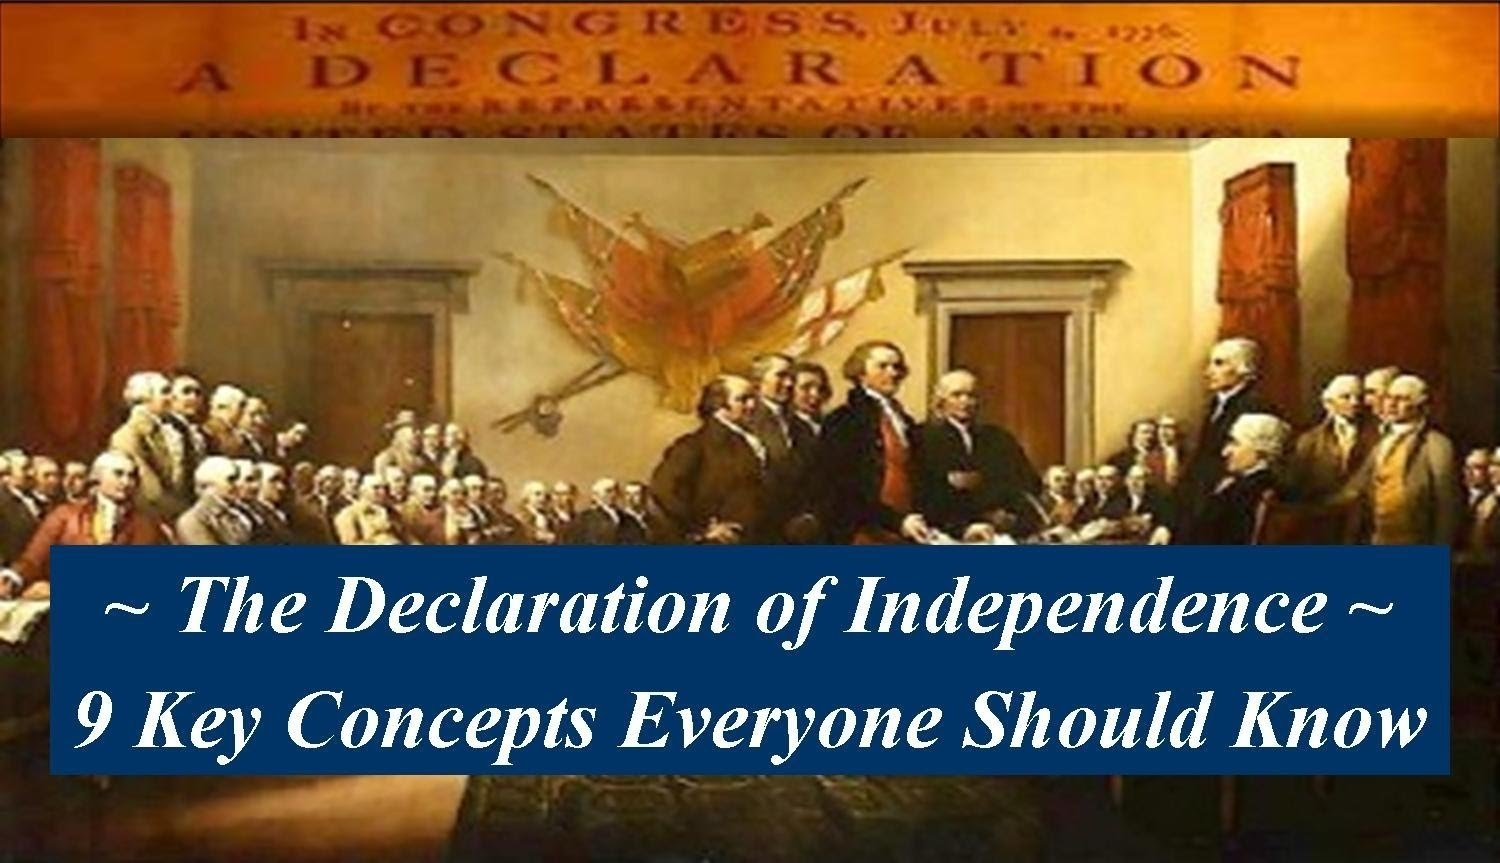 10 Lovable Main Idea Of Declaration Of Independence understanding the declaration of independence 9 key concepts 4 2020